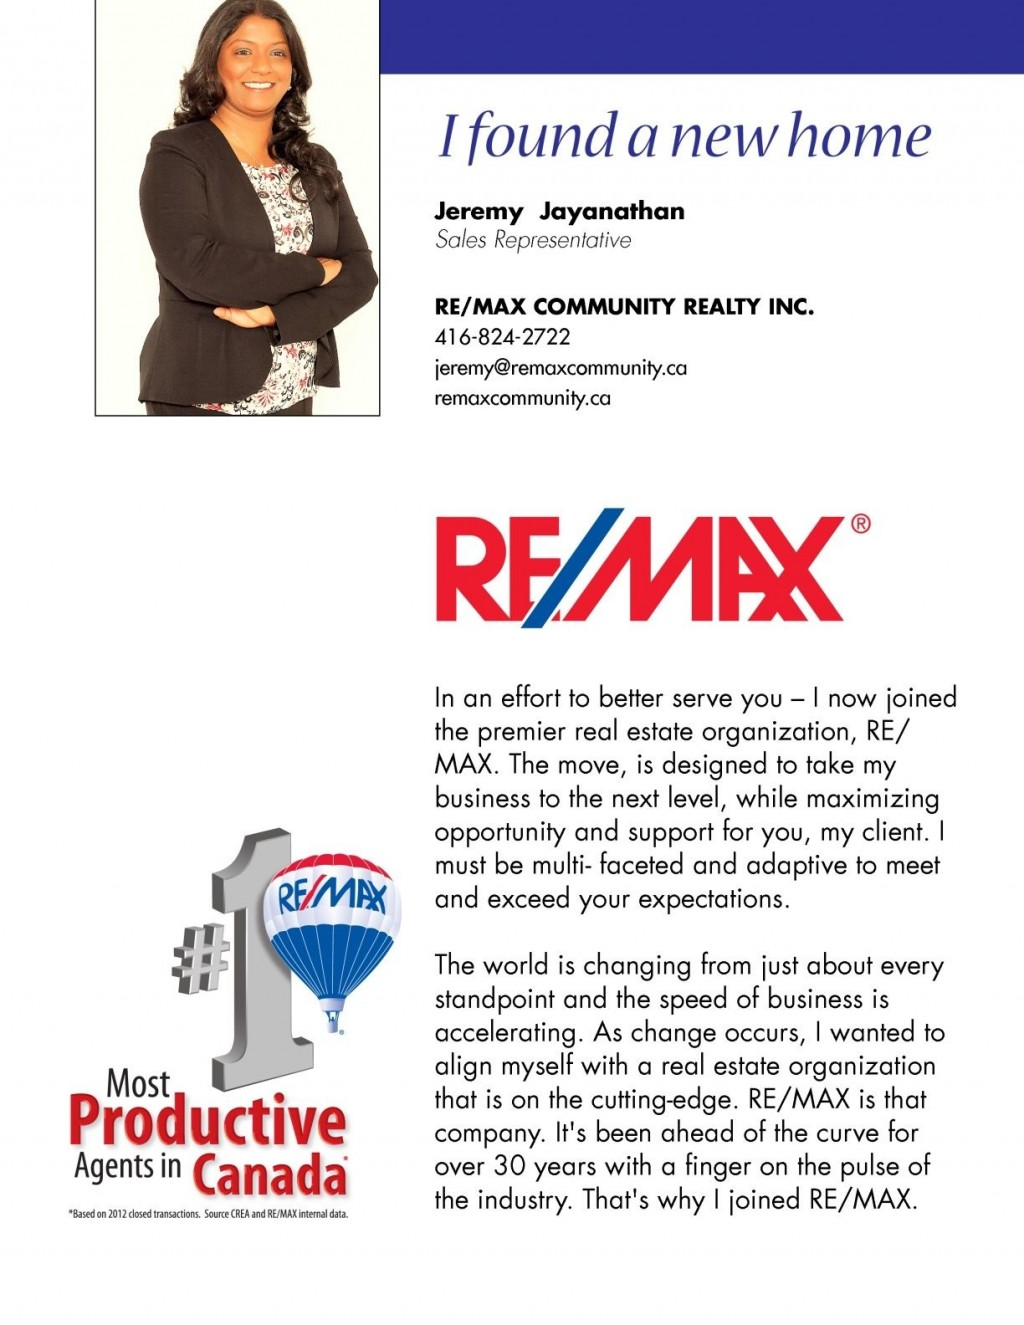 002 Unbelievable Real Estate Marketing Letter Example High Resolution  Examples Agent SampleLarge